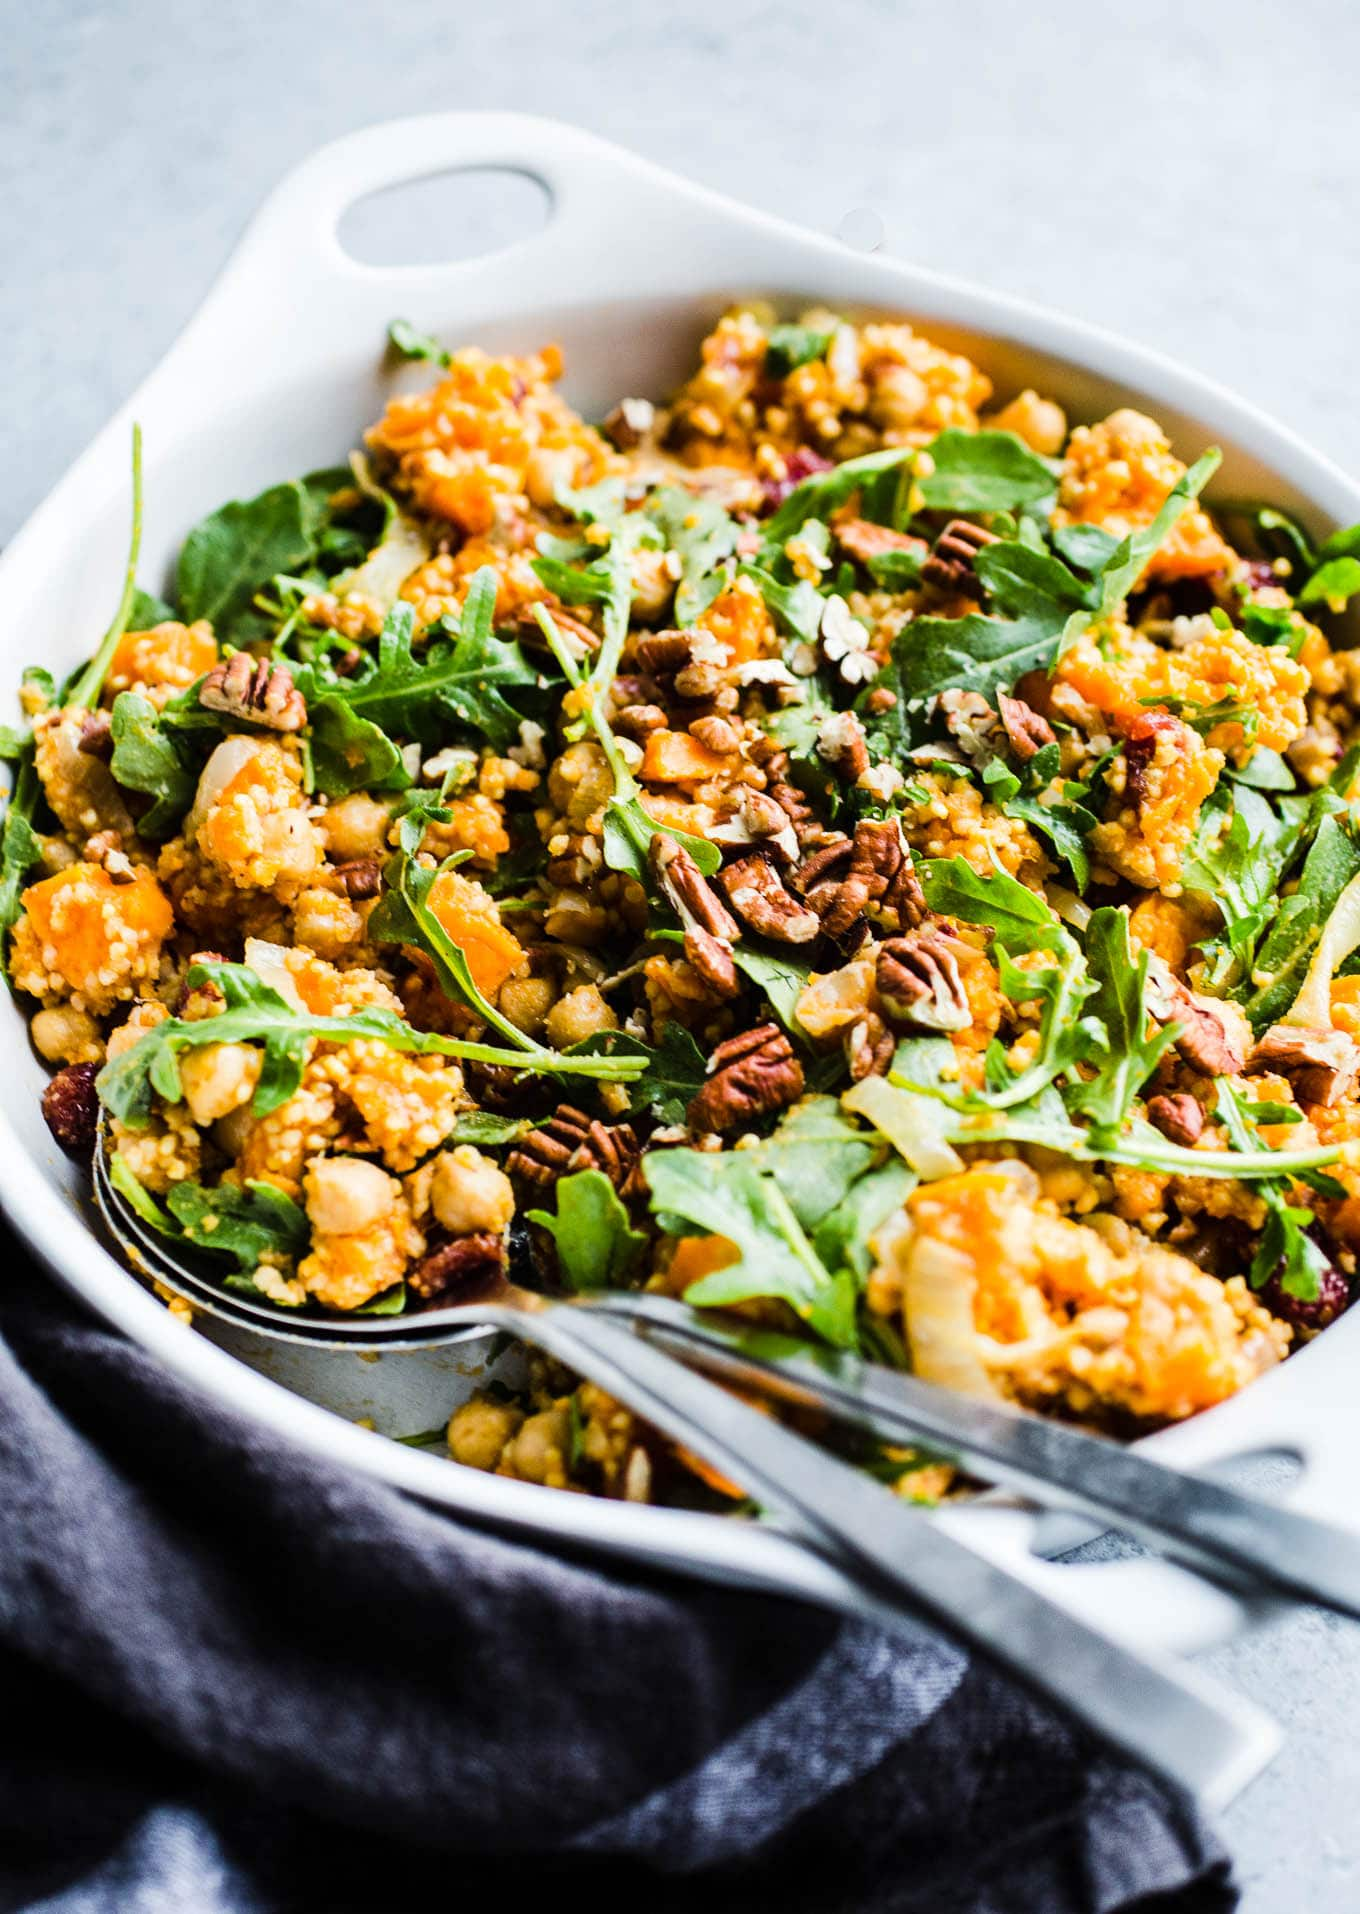 Roasted Sweet Potato Salad with pecans and arugula